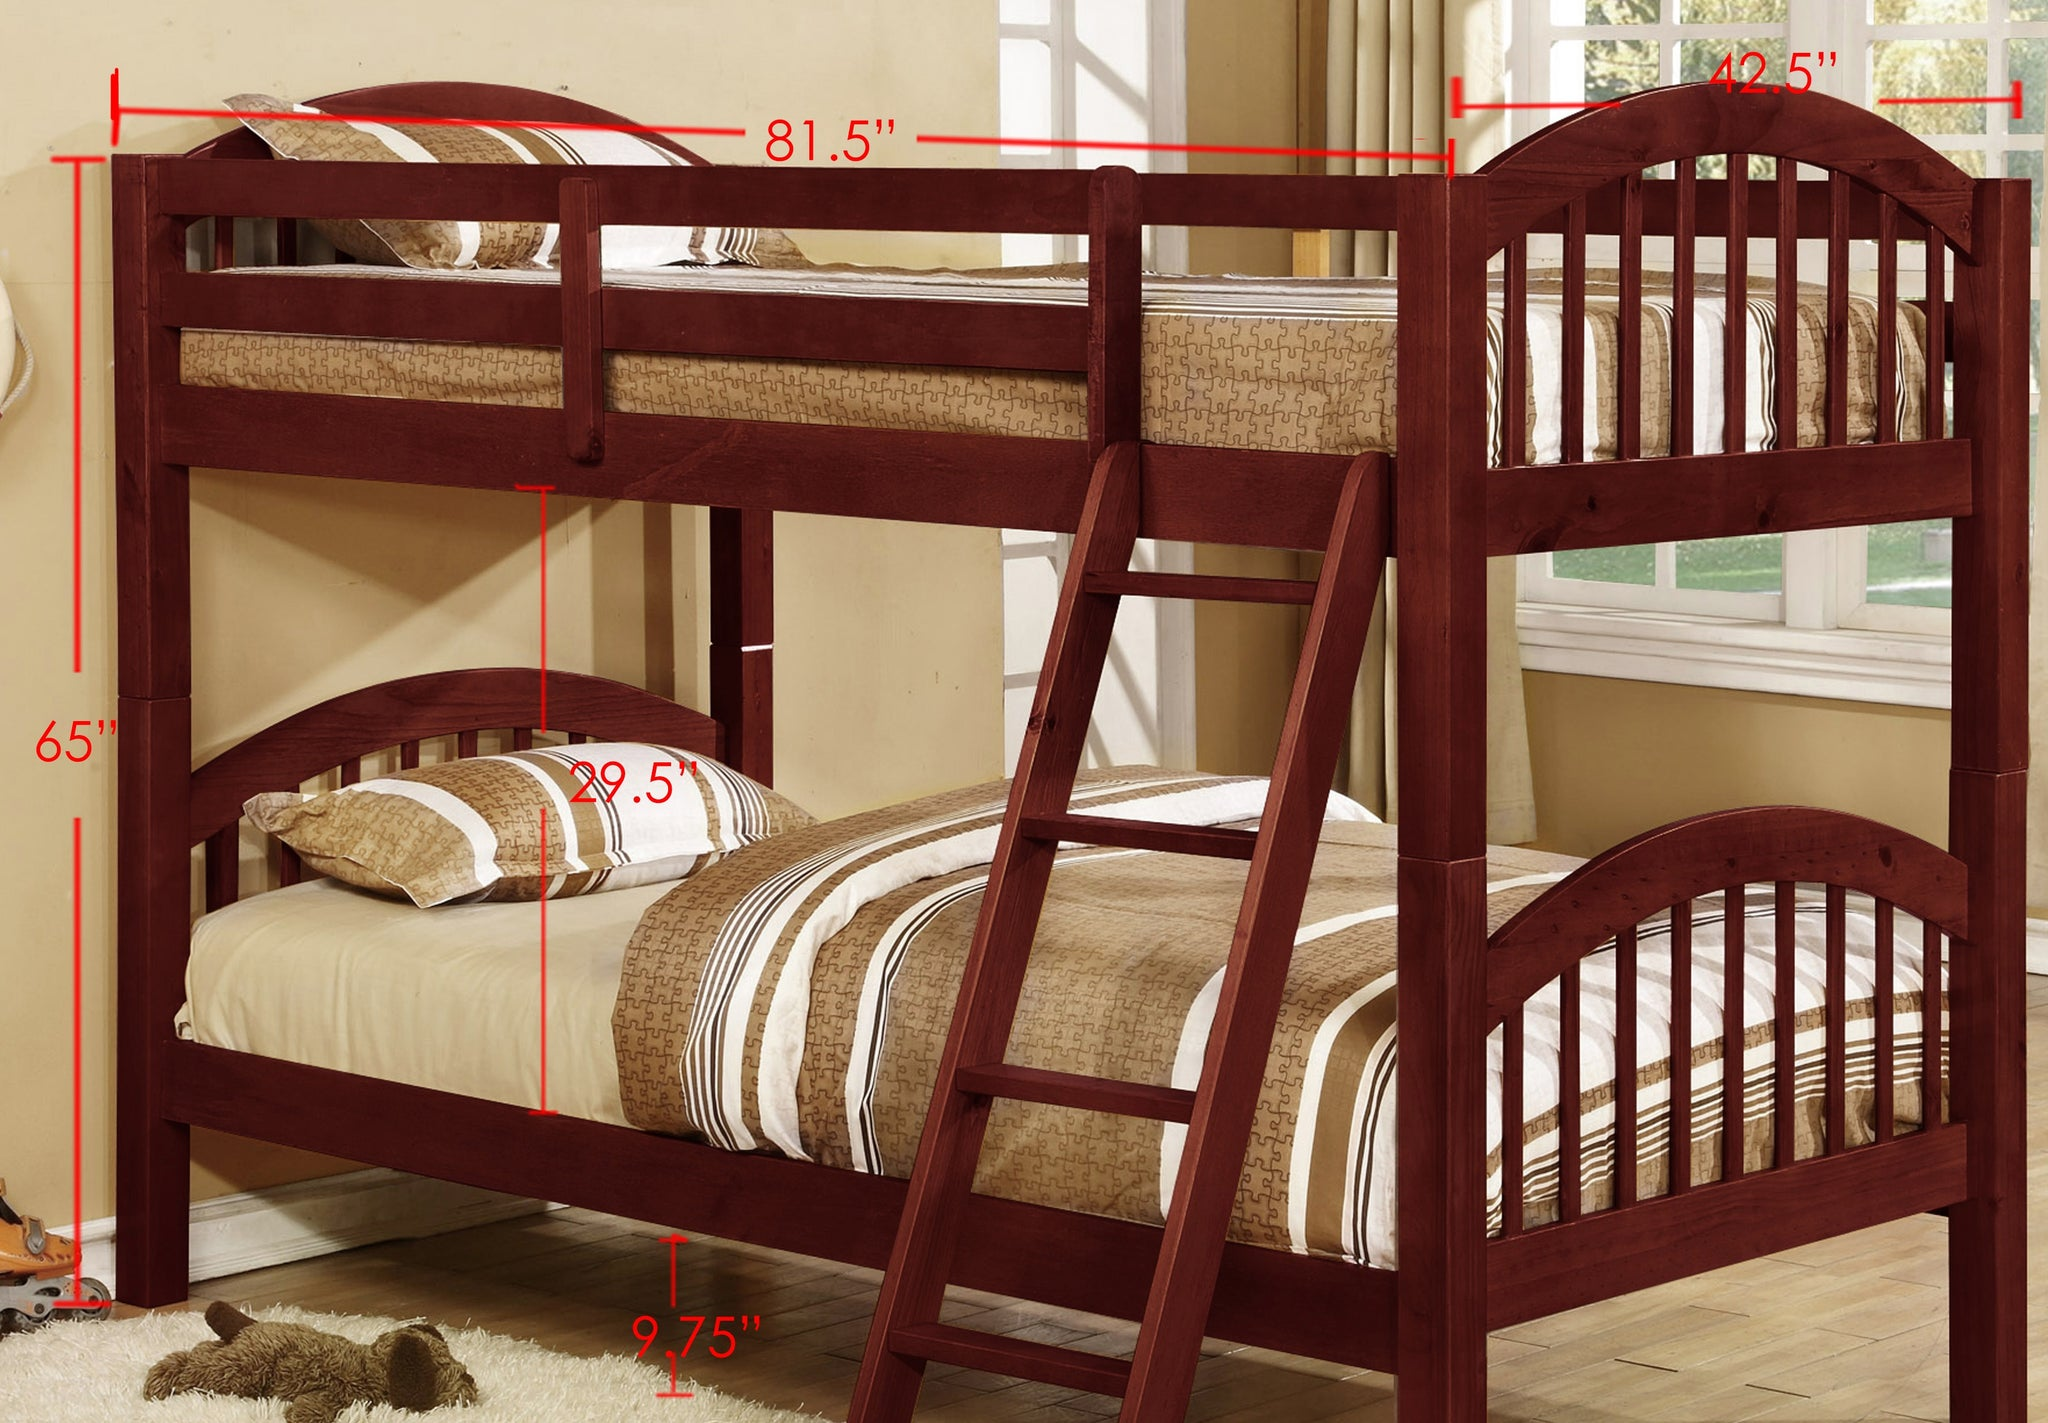 Unique Simple Bunk Bed Design